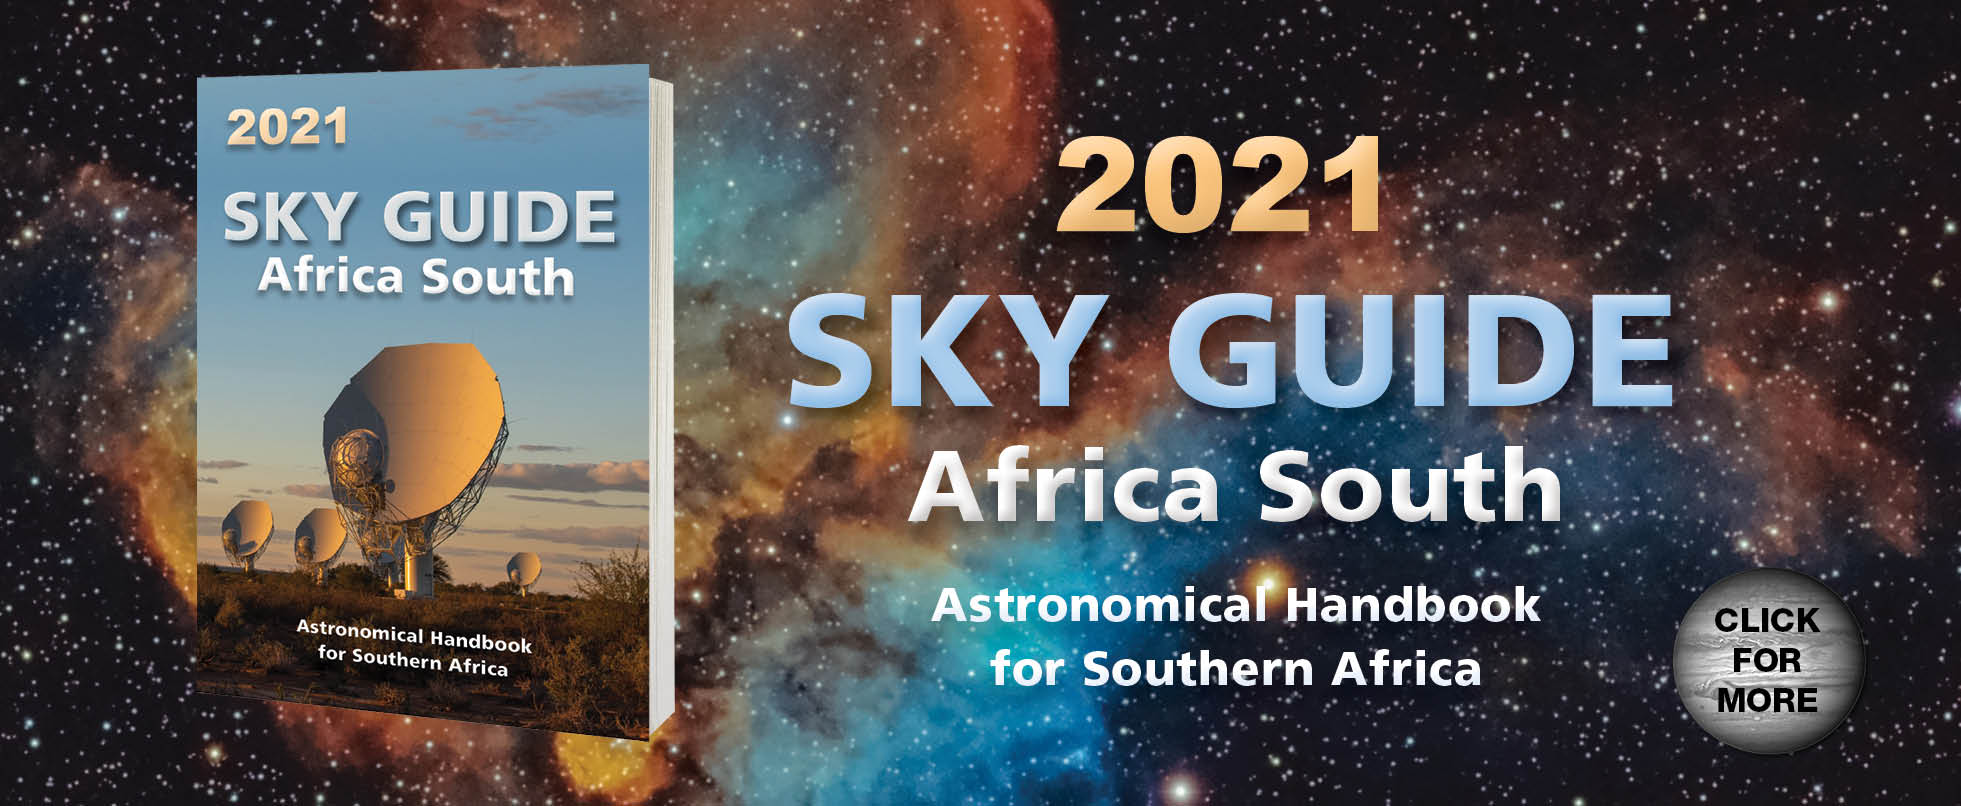 Sky Guide Africa South 2021: Astronomical Handbook for Southern Africa